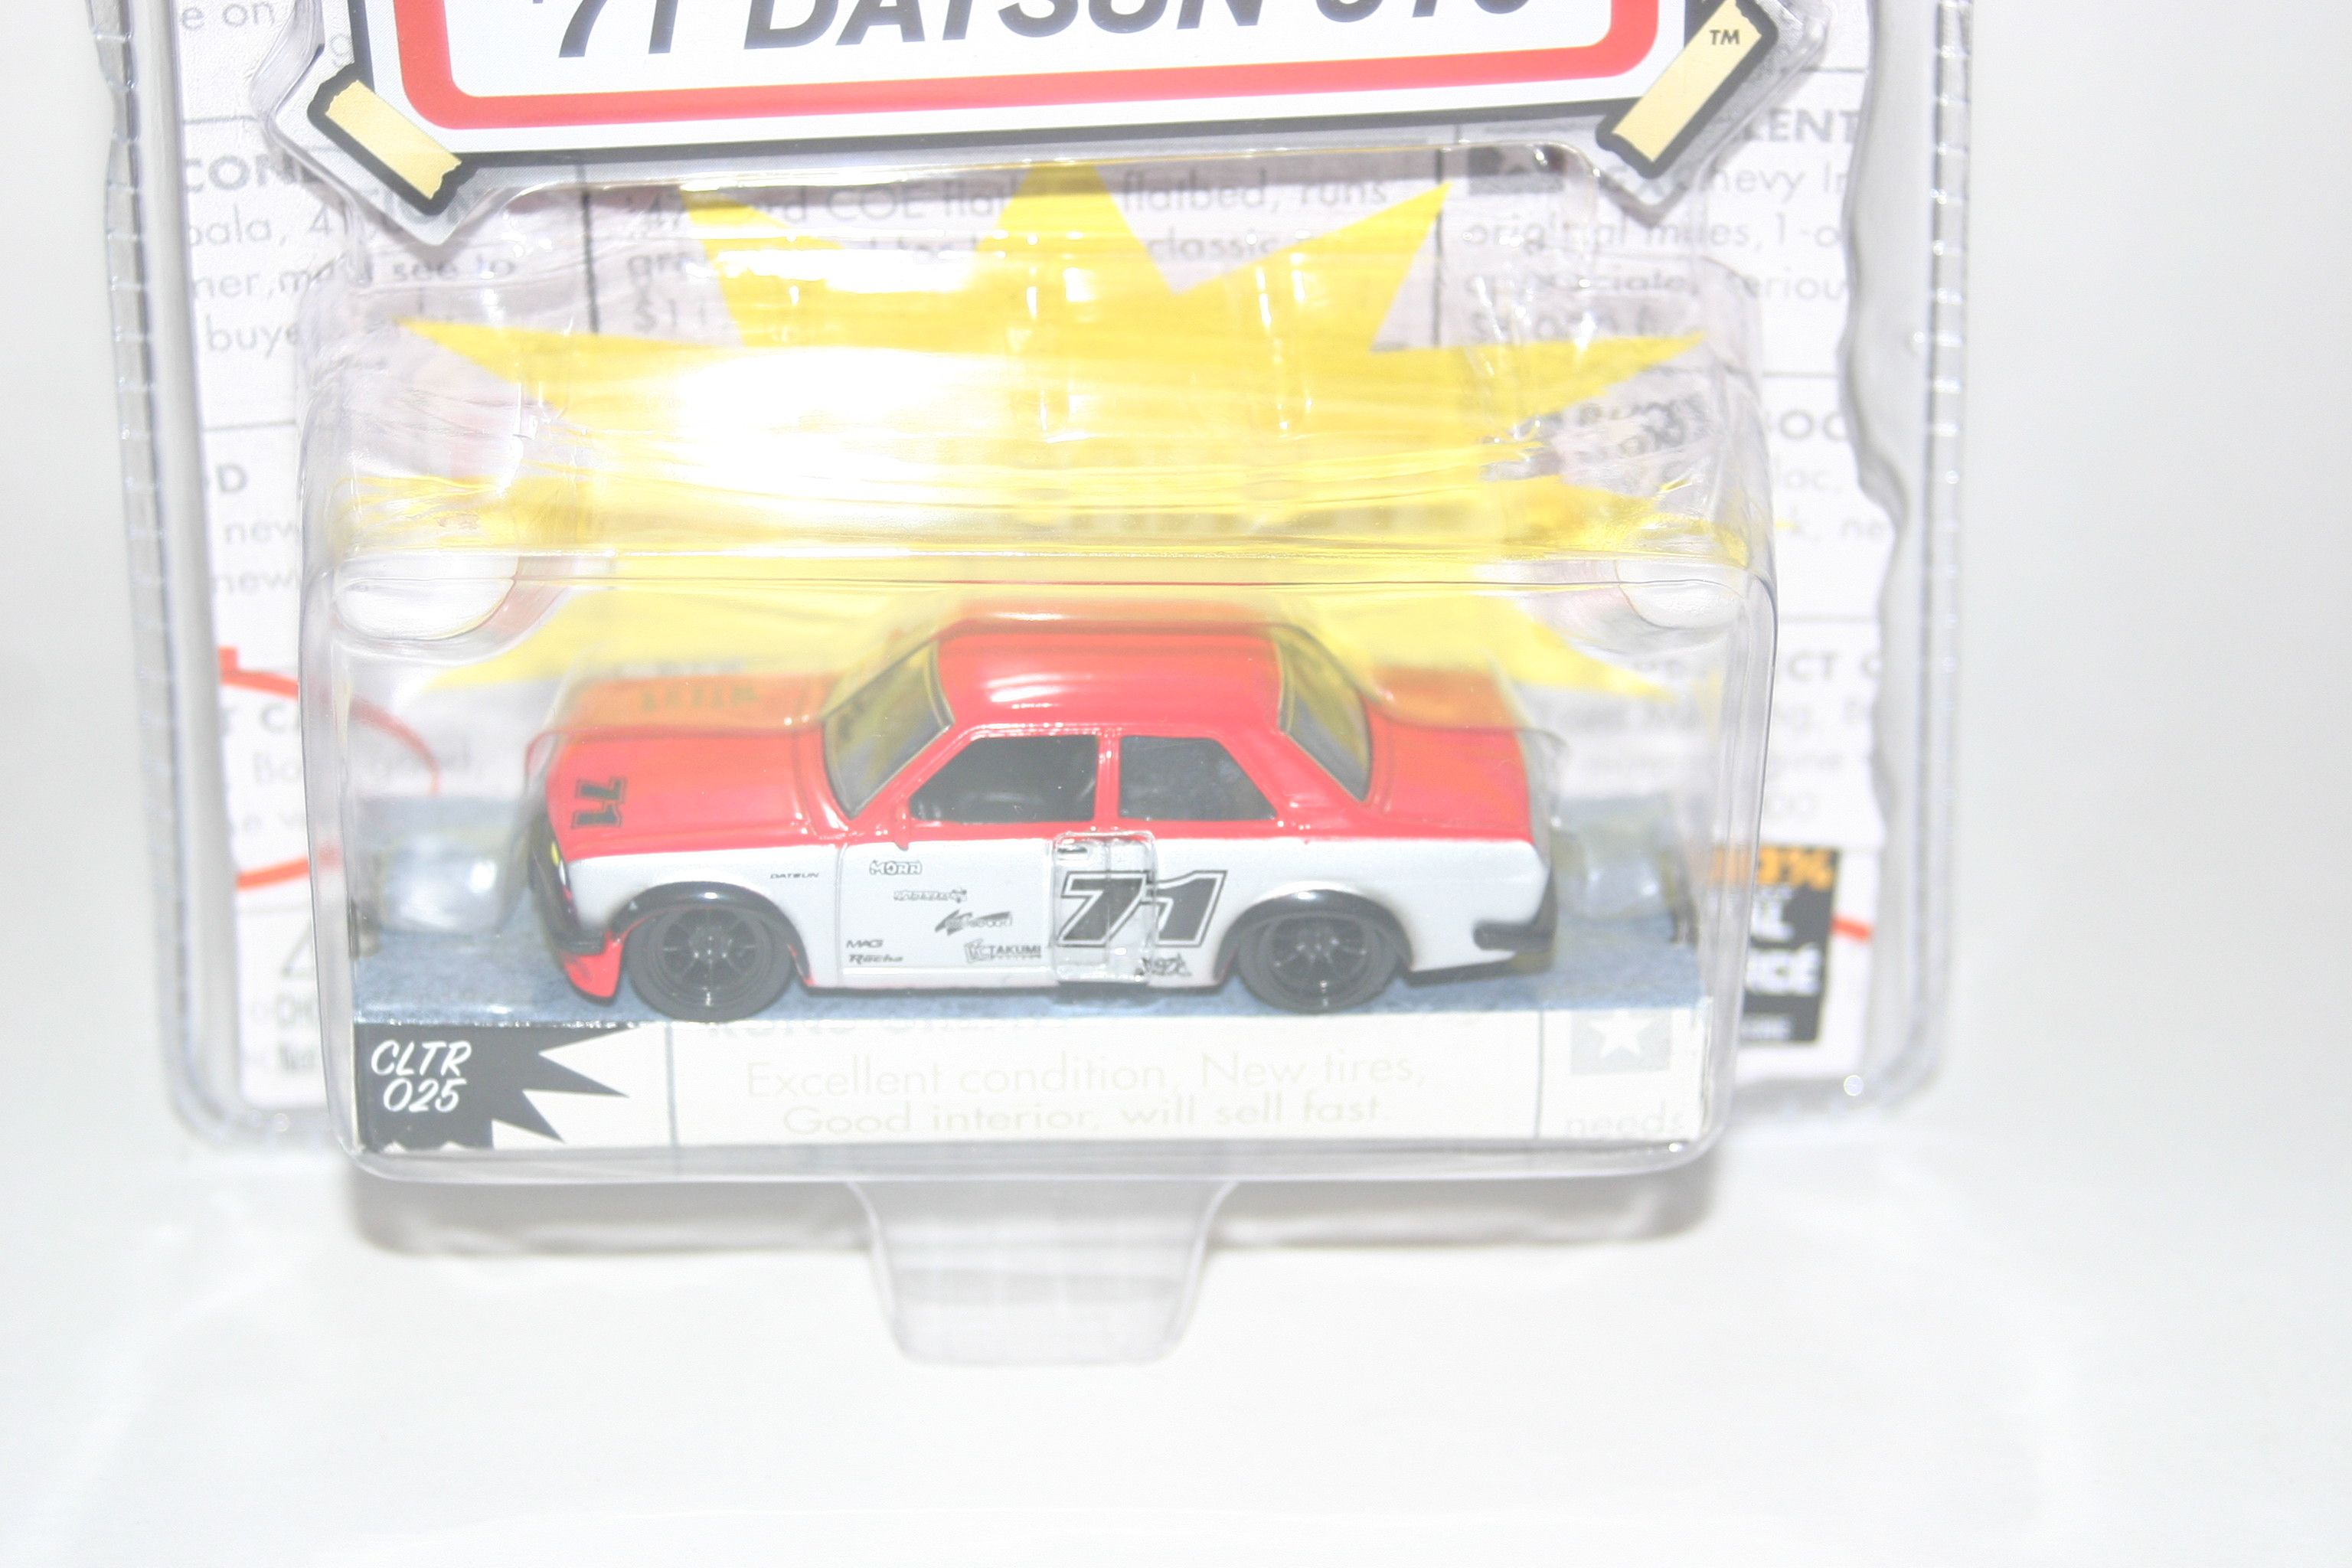 1955 chevy stepside tow truck black jada toys bigtime - Datsun 510 By Jada Toys From The Popular For Sale Series